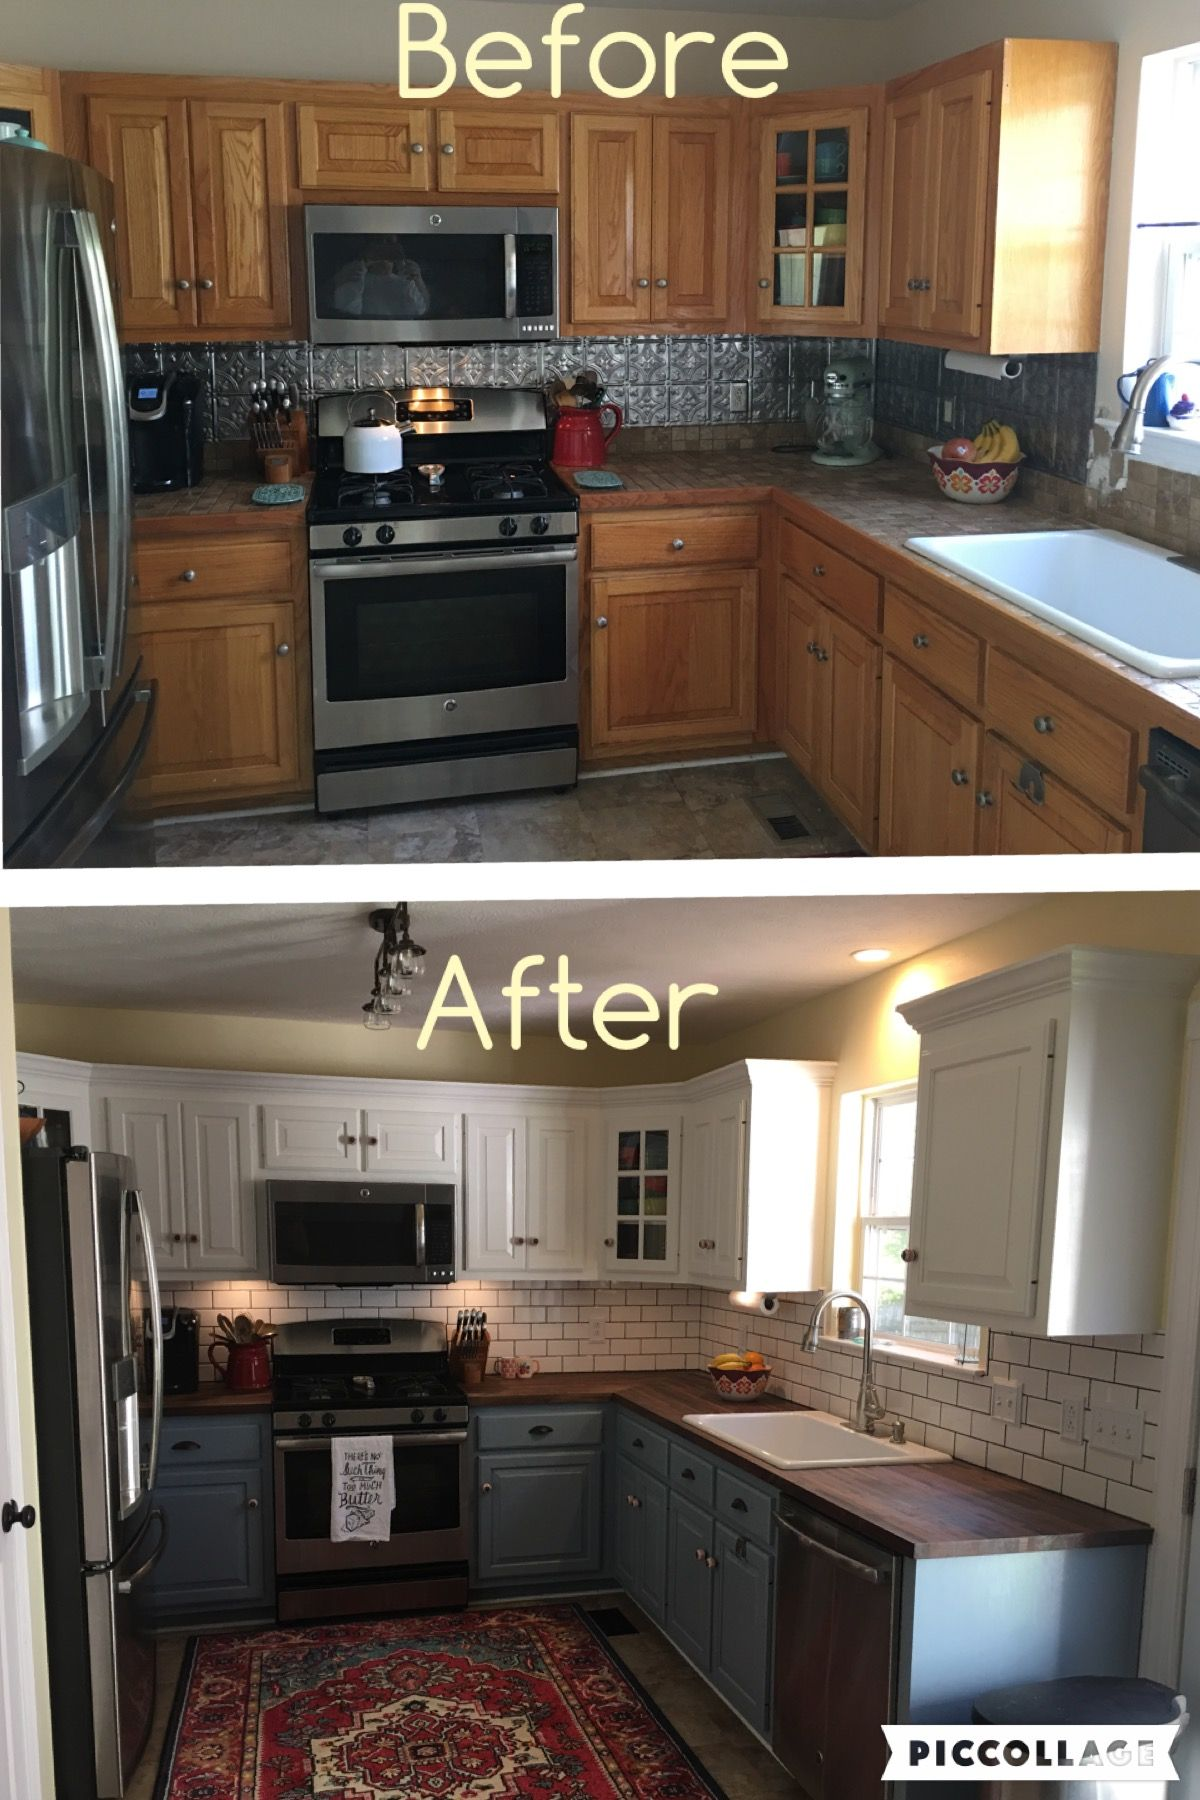 Are Lowes Kitchen Cabinets Any Good Two Toned Cabinets Valspar Cabinet Enamel From Lowes